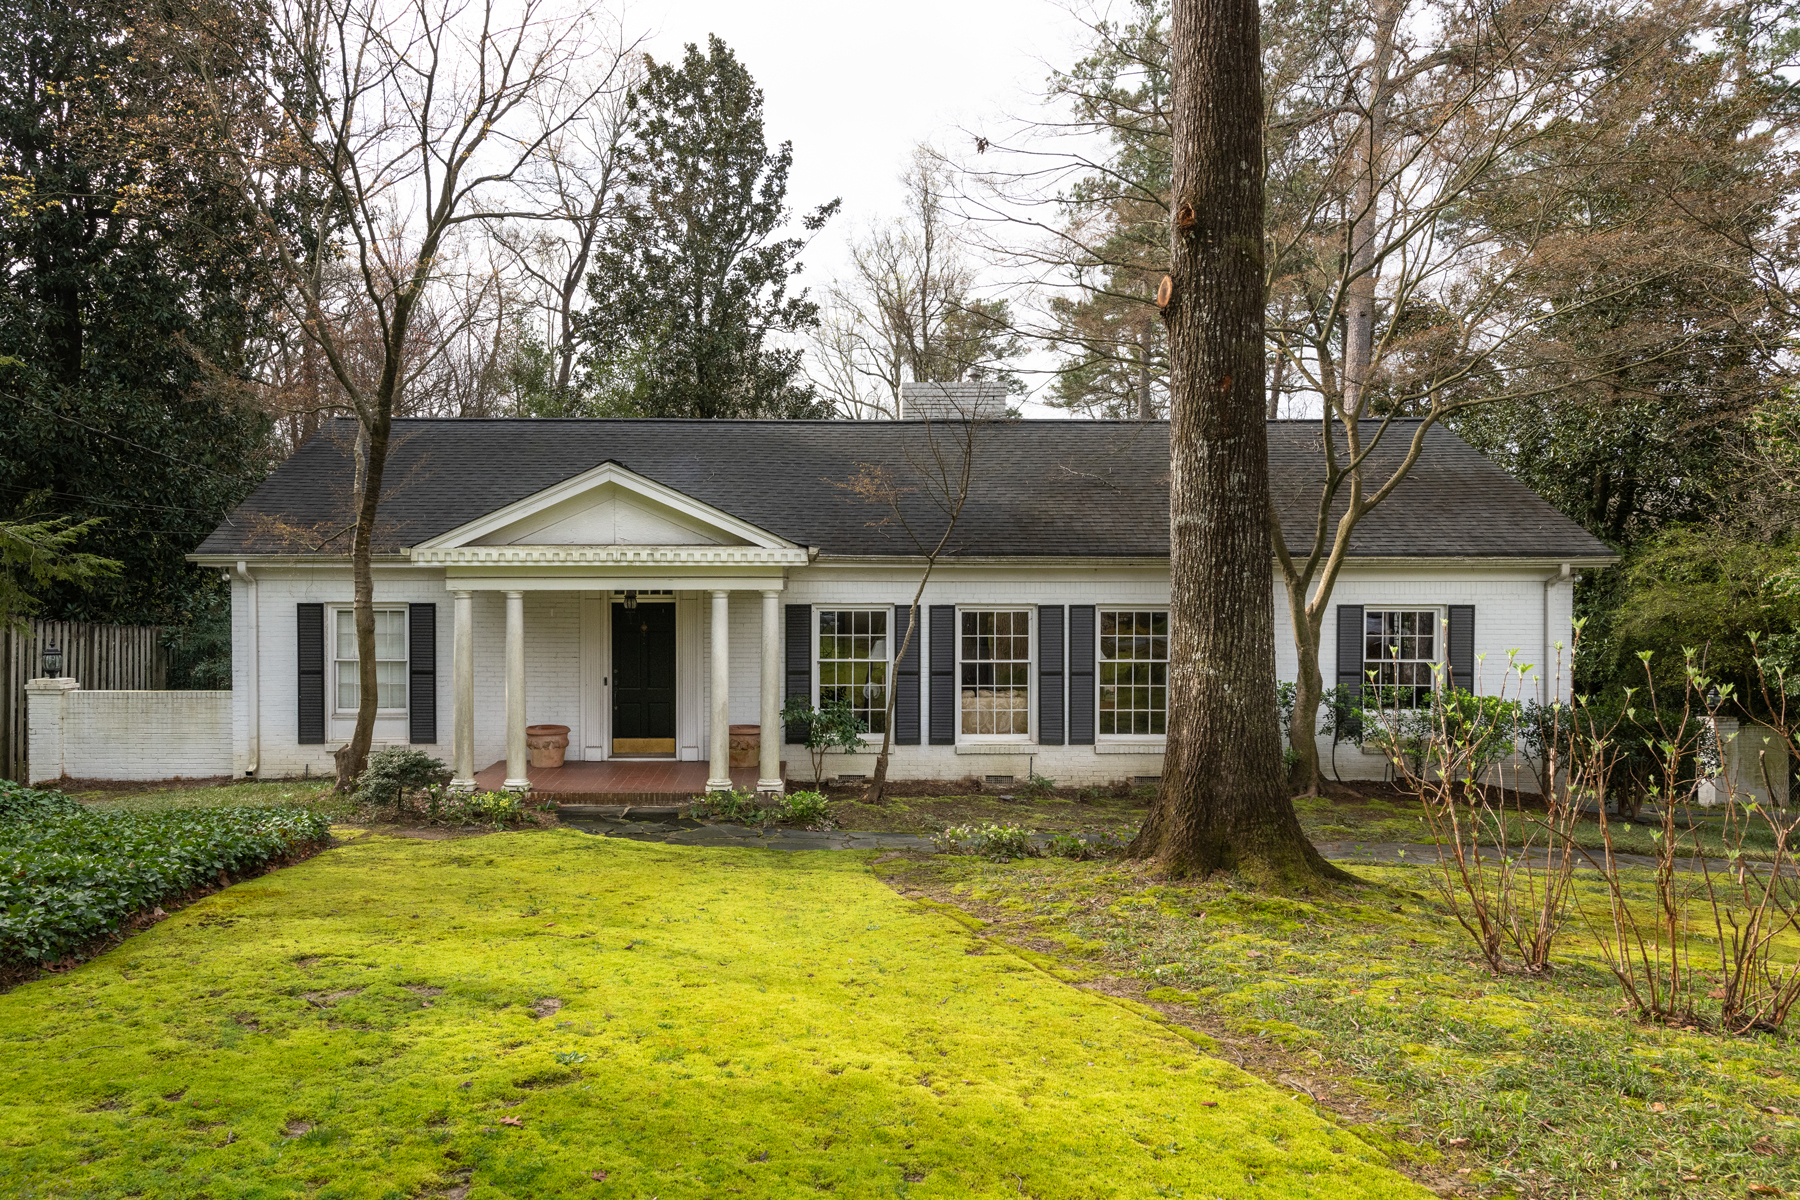 Property for Sale at Perfect Site for Rebuild on 0.67+/- Acre Flat Lot in Buckhead 218 W Paces Ferrry Road NW Atlanta, Georgia 30305 United States